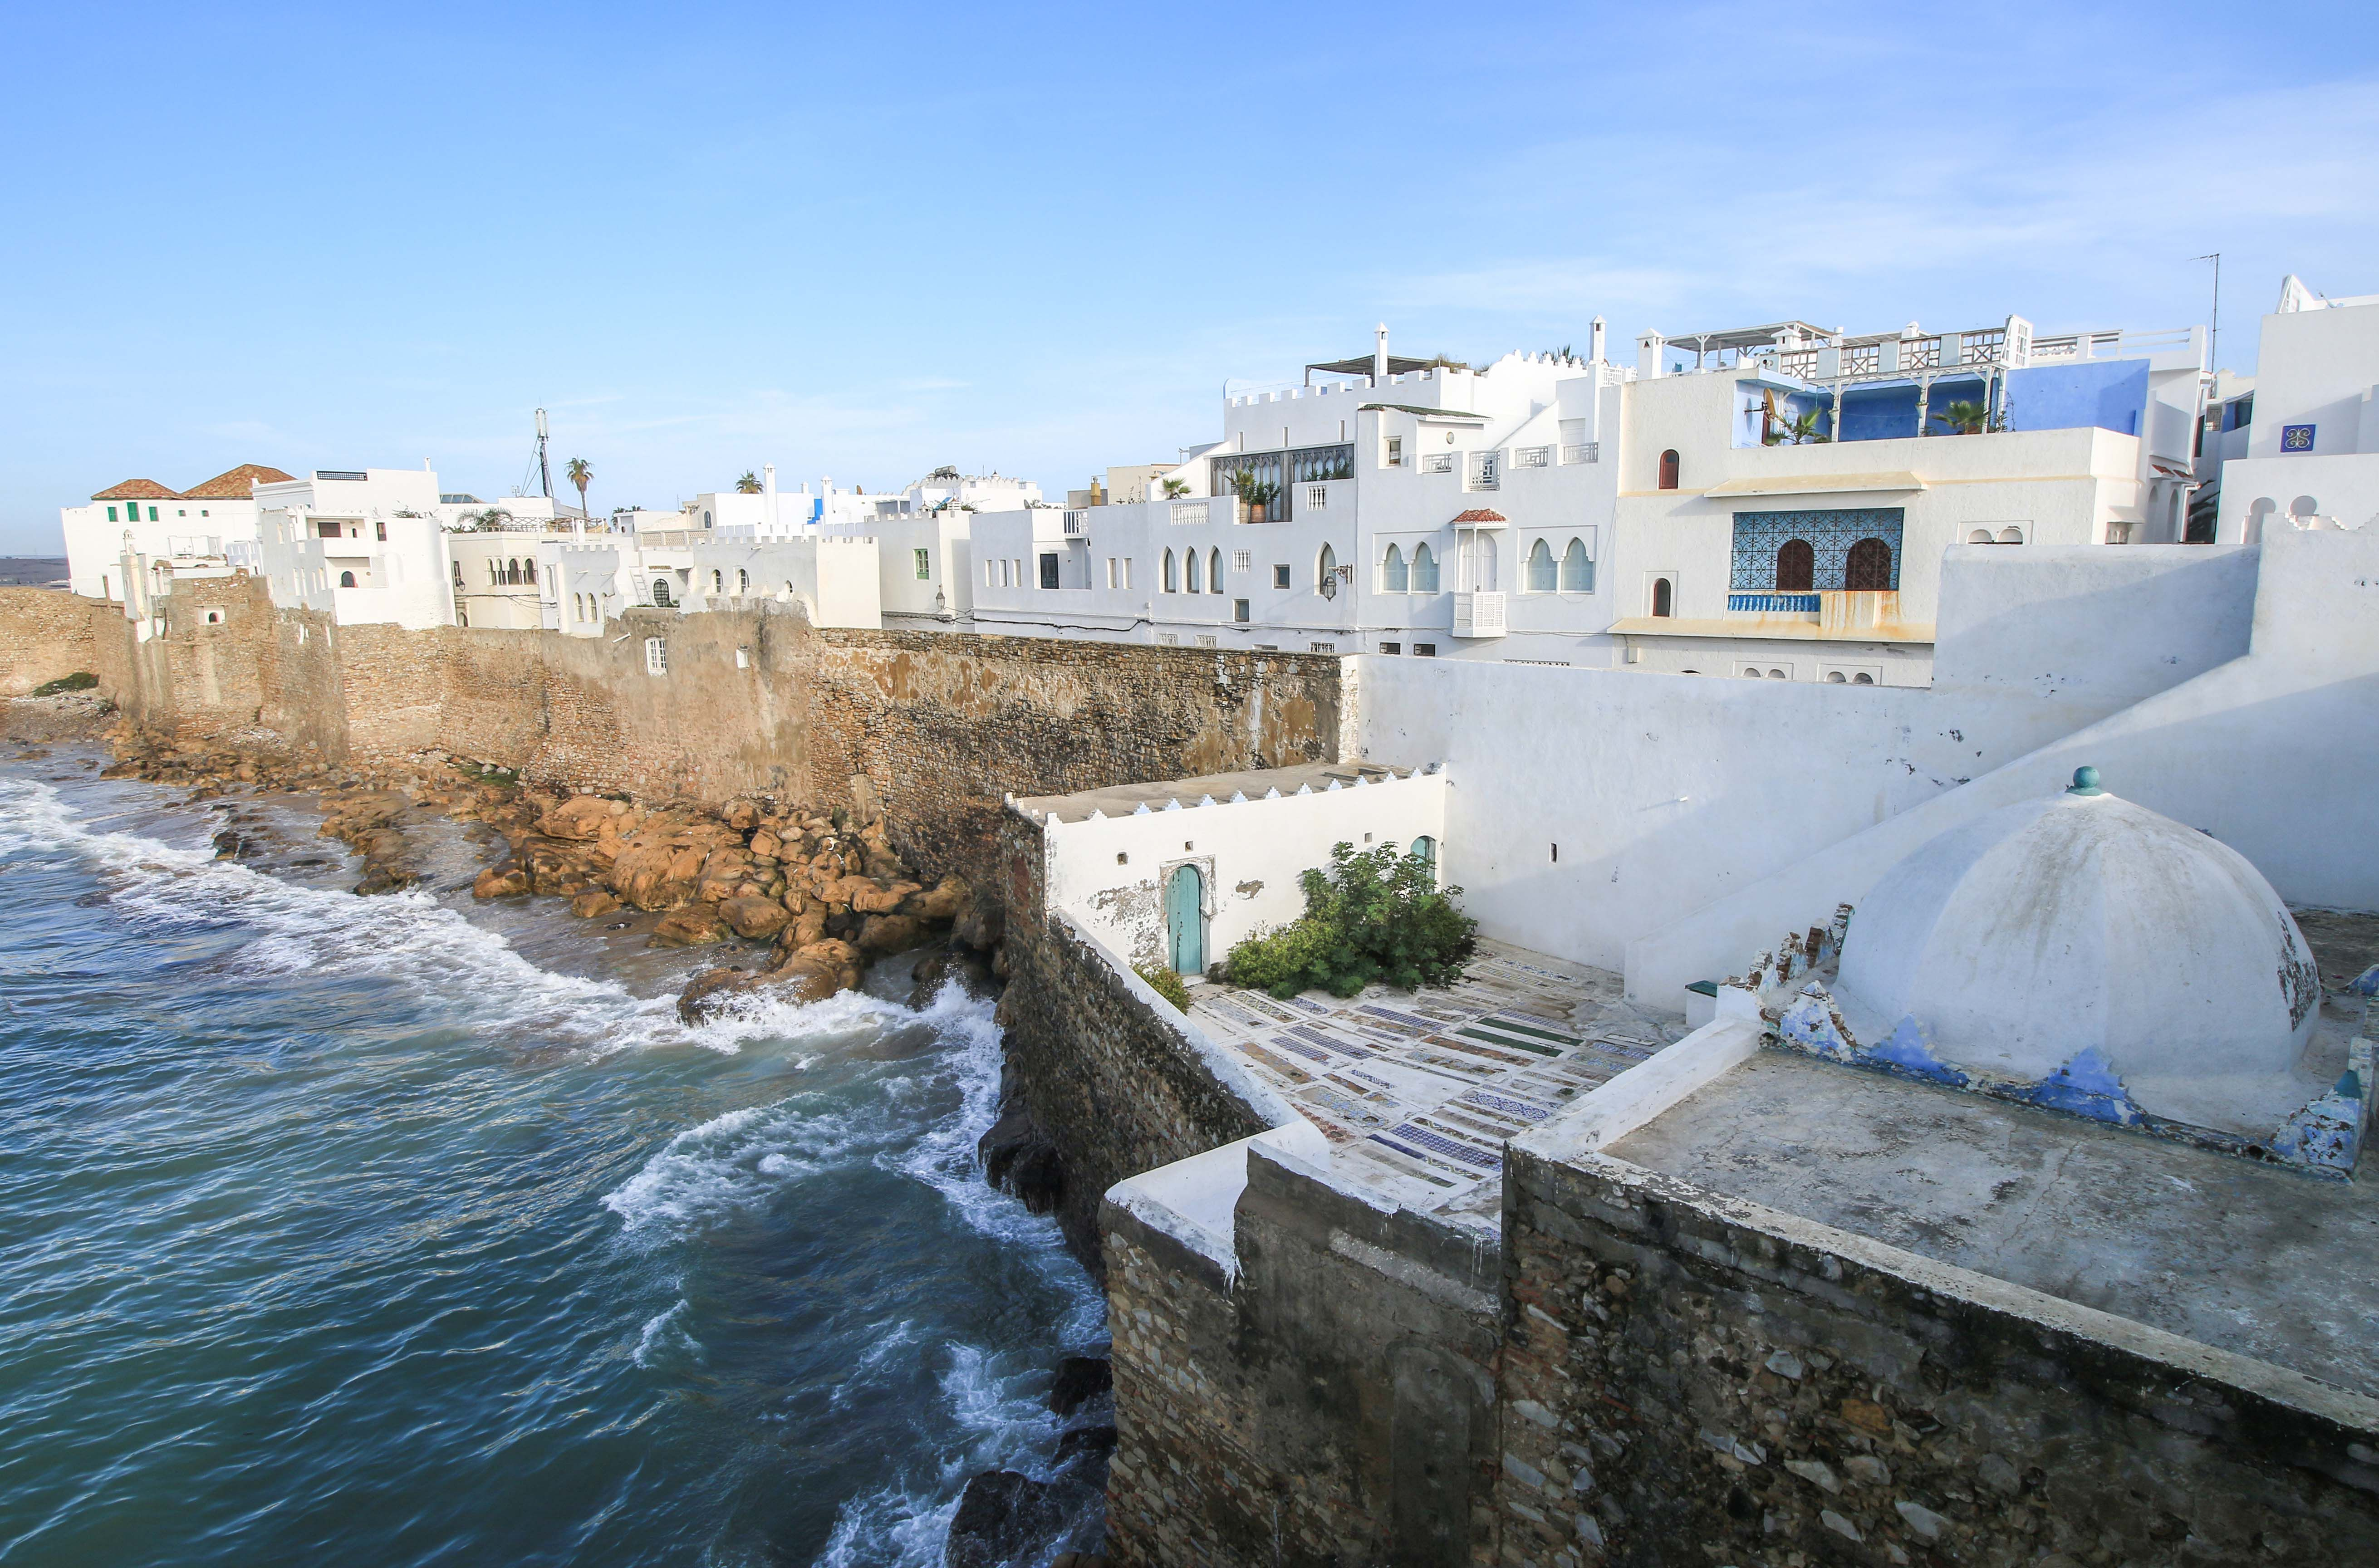 A view of white buildings on a cliff above the sea